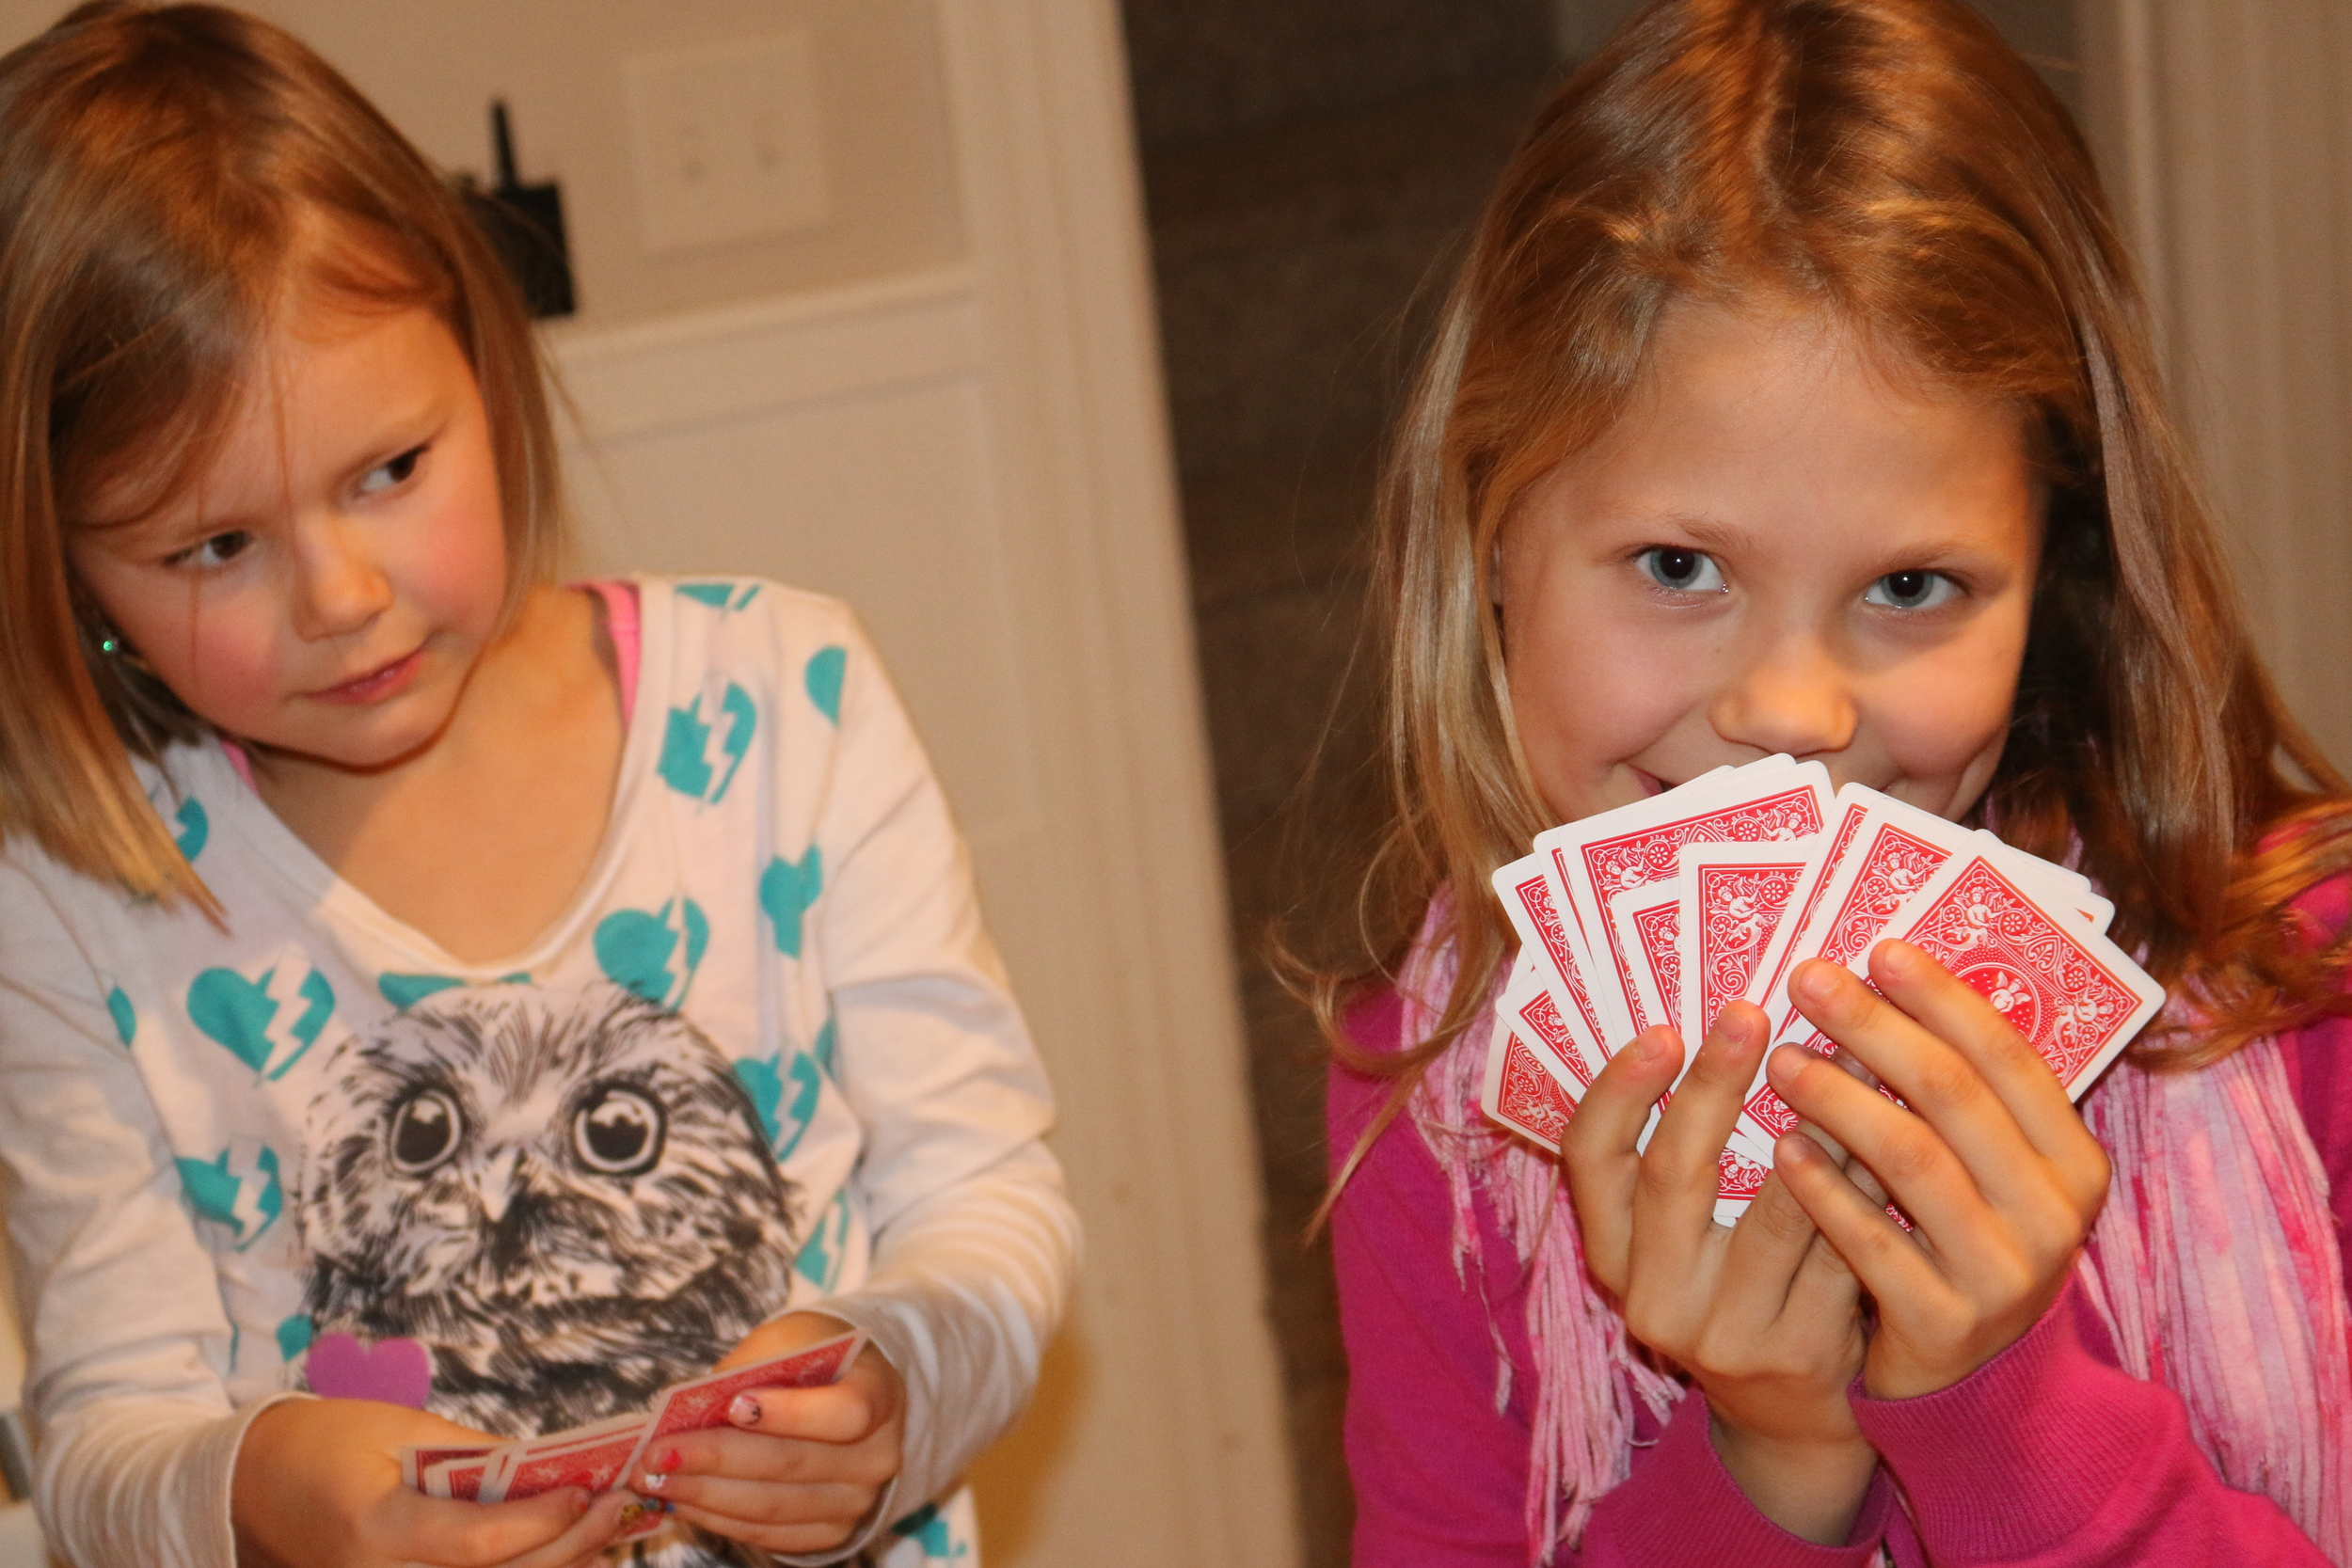 When it is this cold it is good to play cards inside